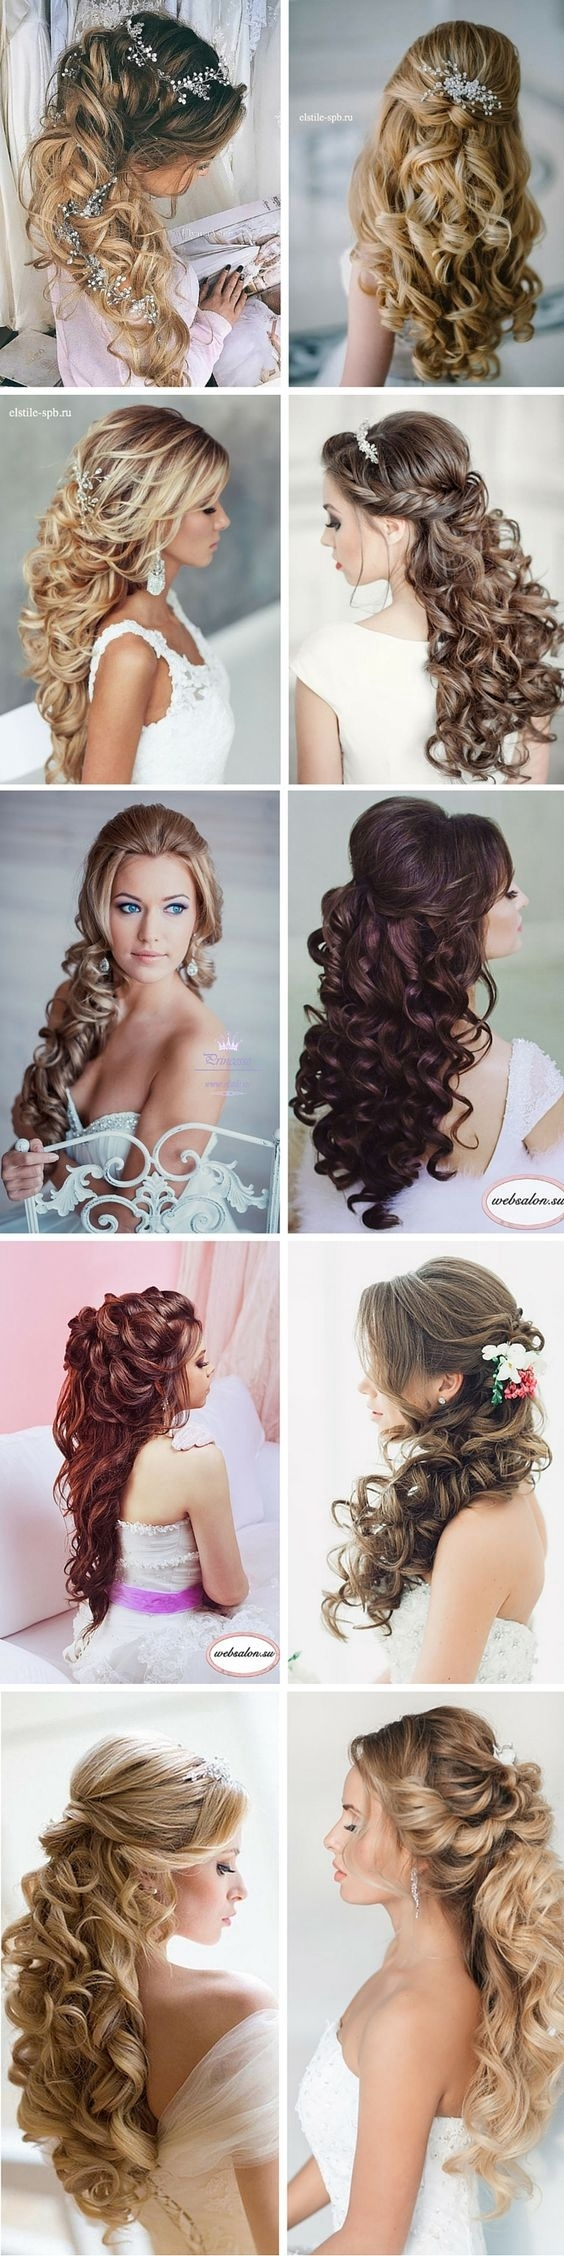 Trendy Ringlets Wedding Hairstyles For 100+ Romantic Long Wedding Hairstyles 2018 – Curls, Half Up, Updos (View 9 of 15)